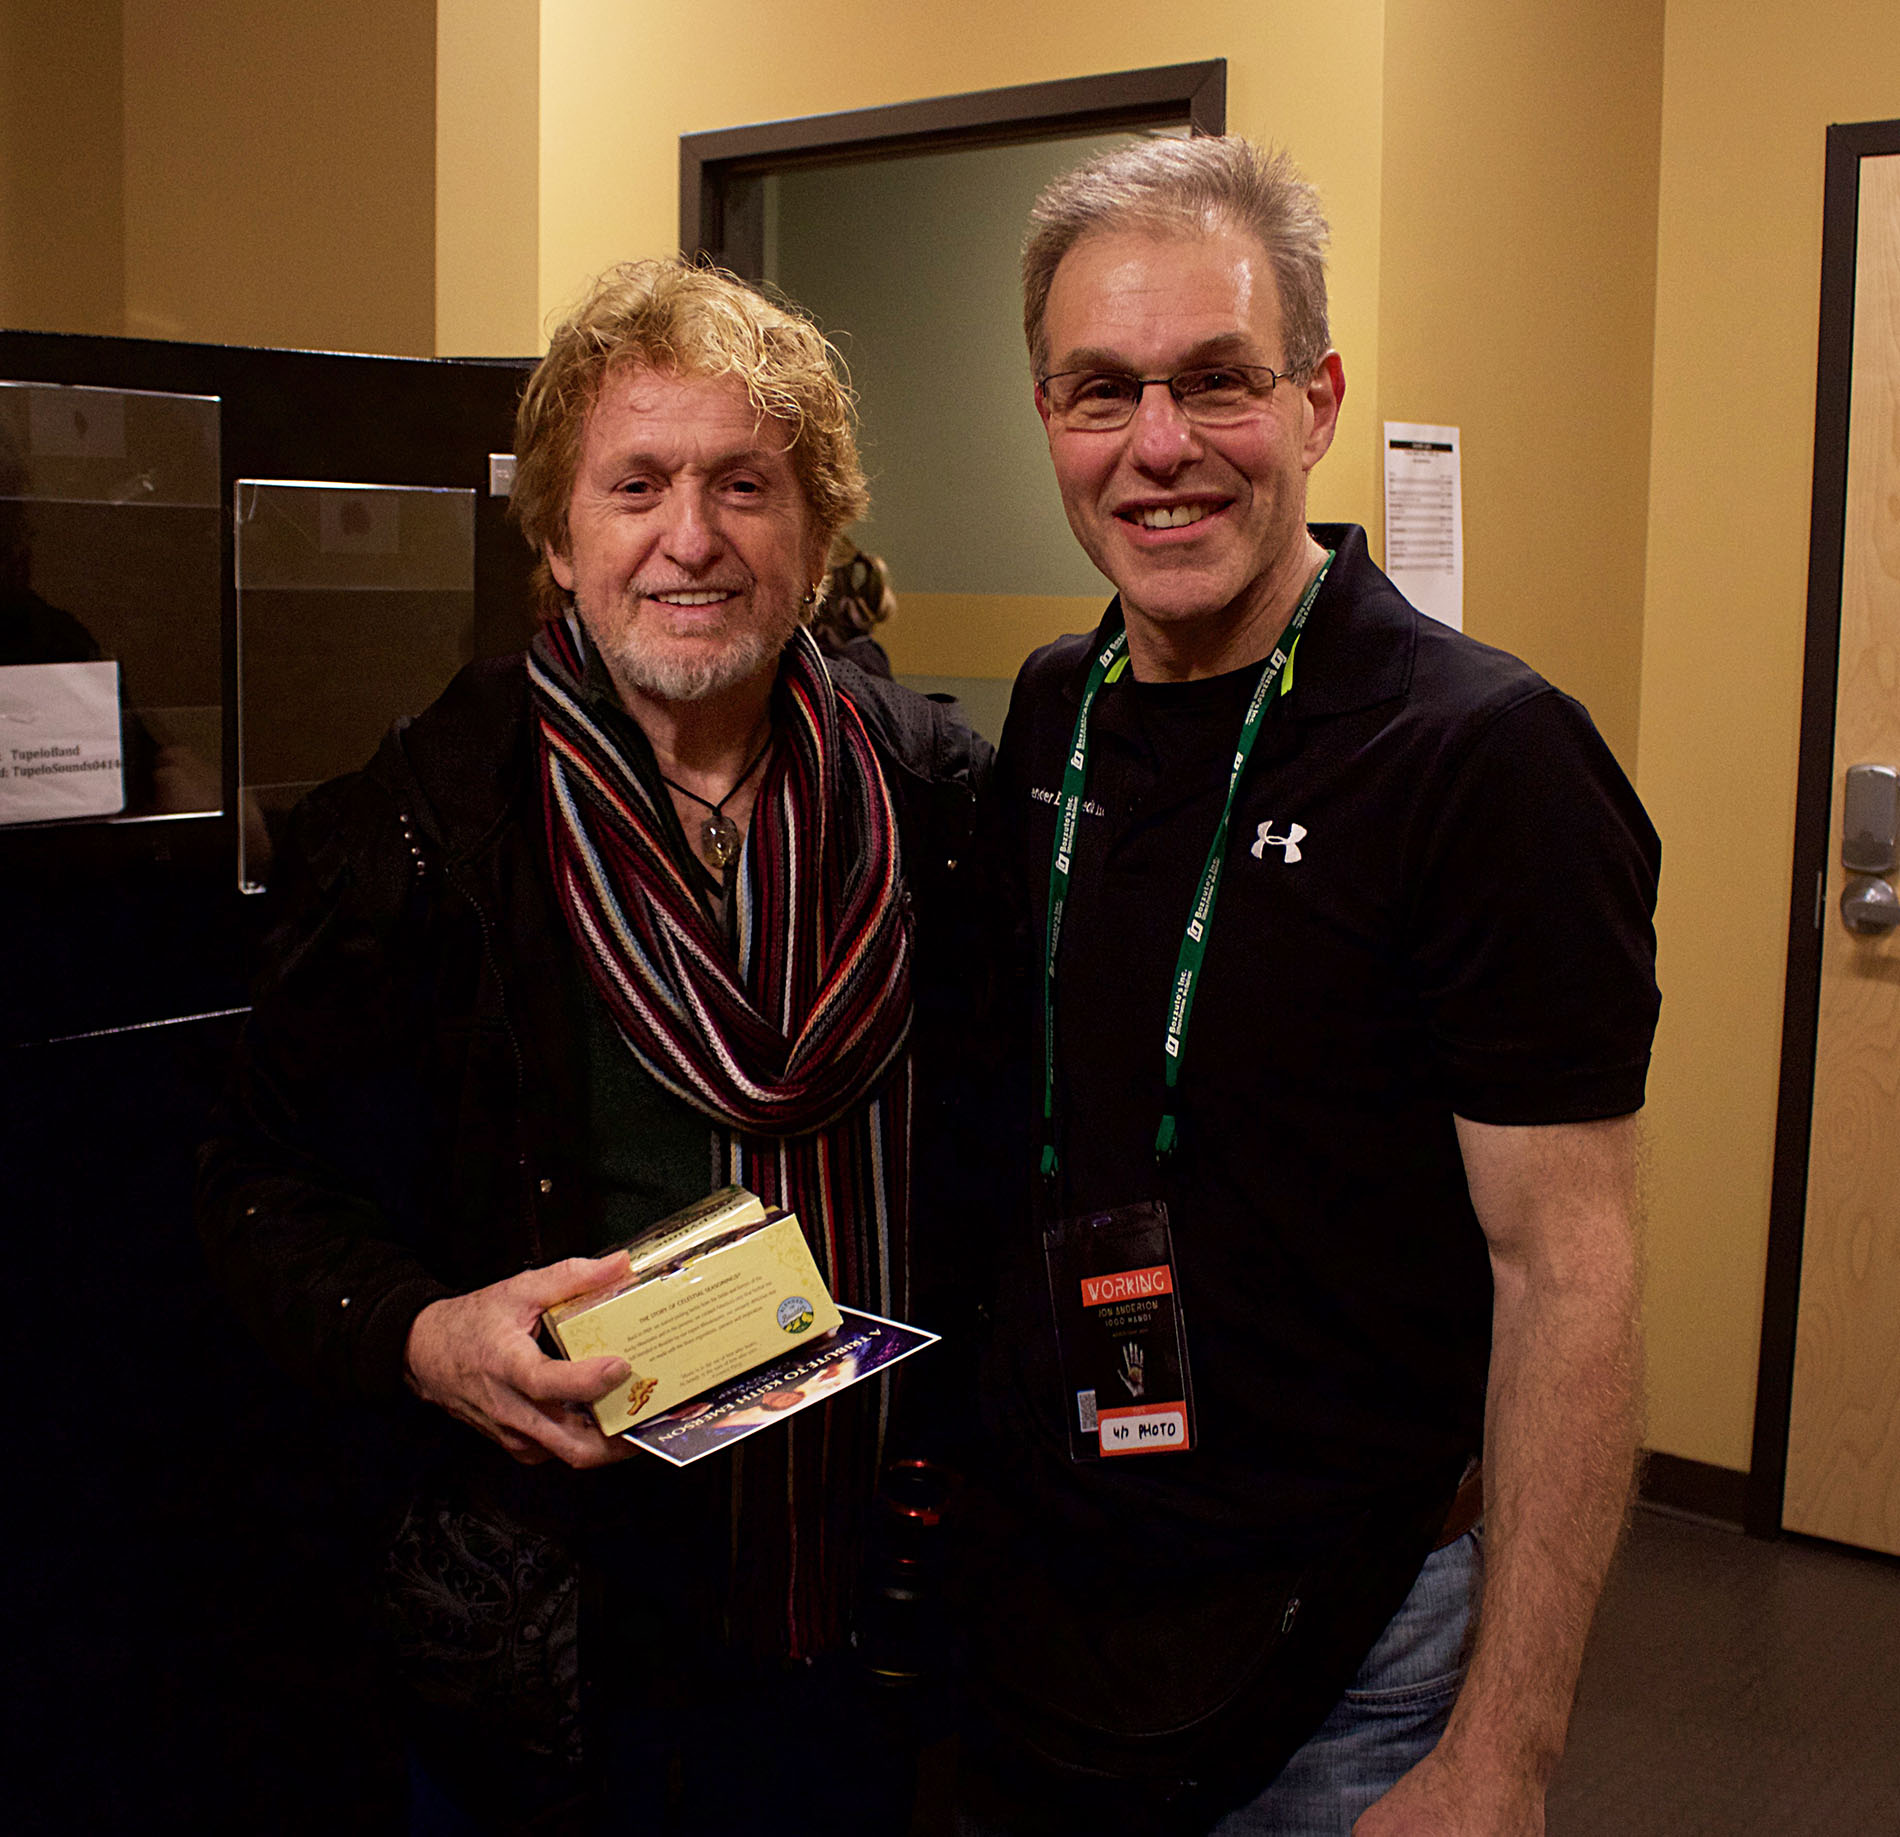 Jon Anderson and Elliot Gould at the Tupelo Music Hall, April 7, 2019